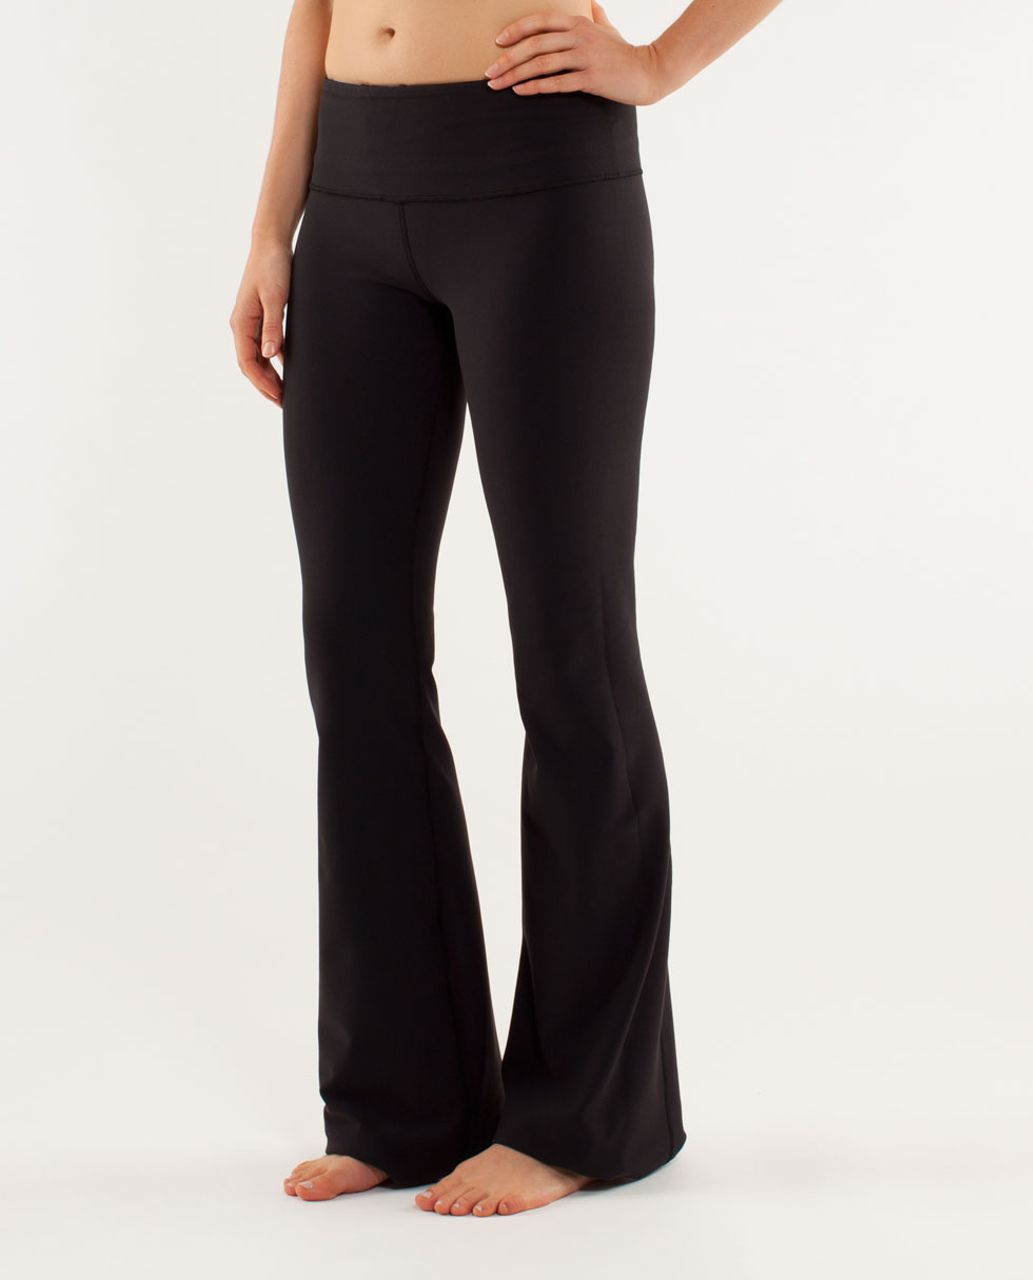 Lululemon Groove Pant *New (Tall) - Black / Quilting Winter 15 / Polar Haze